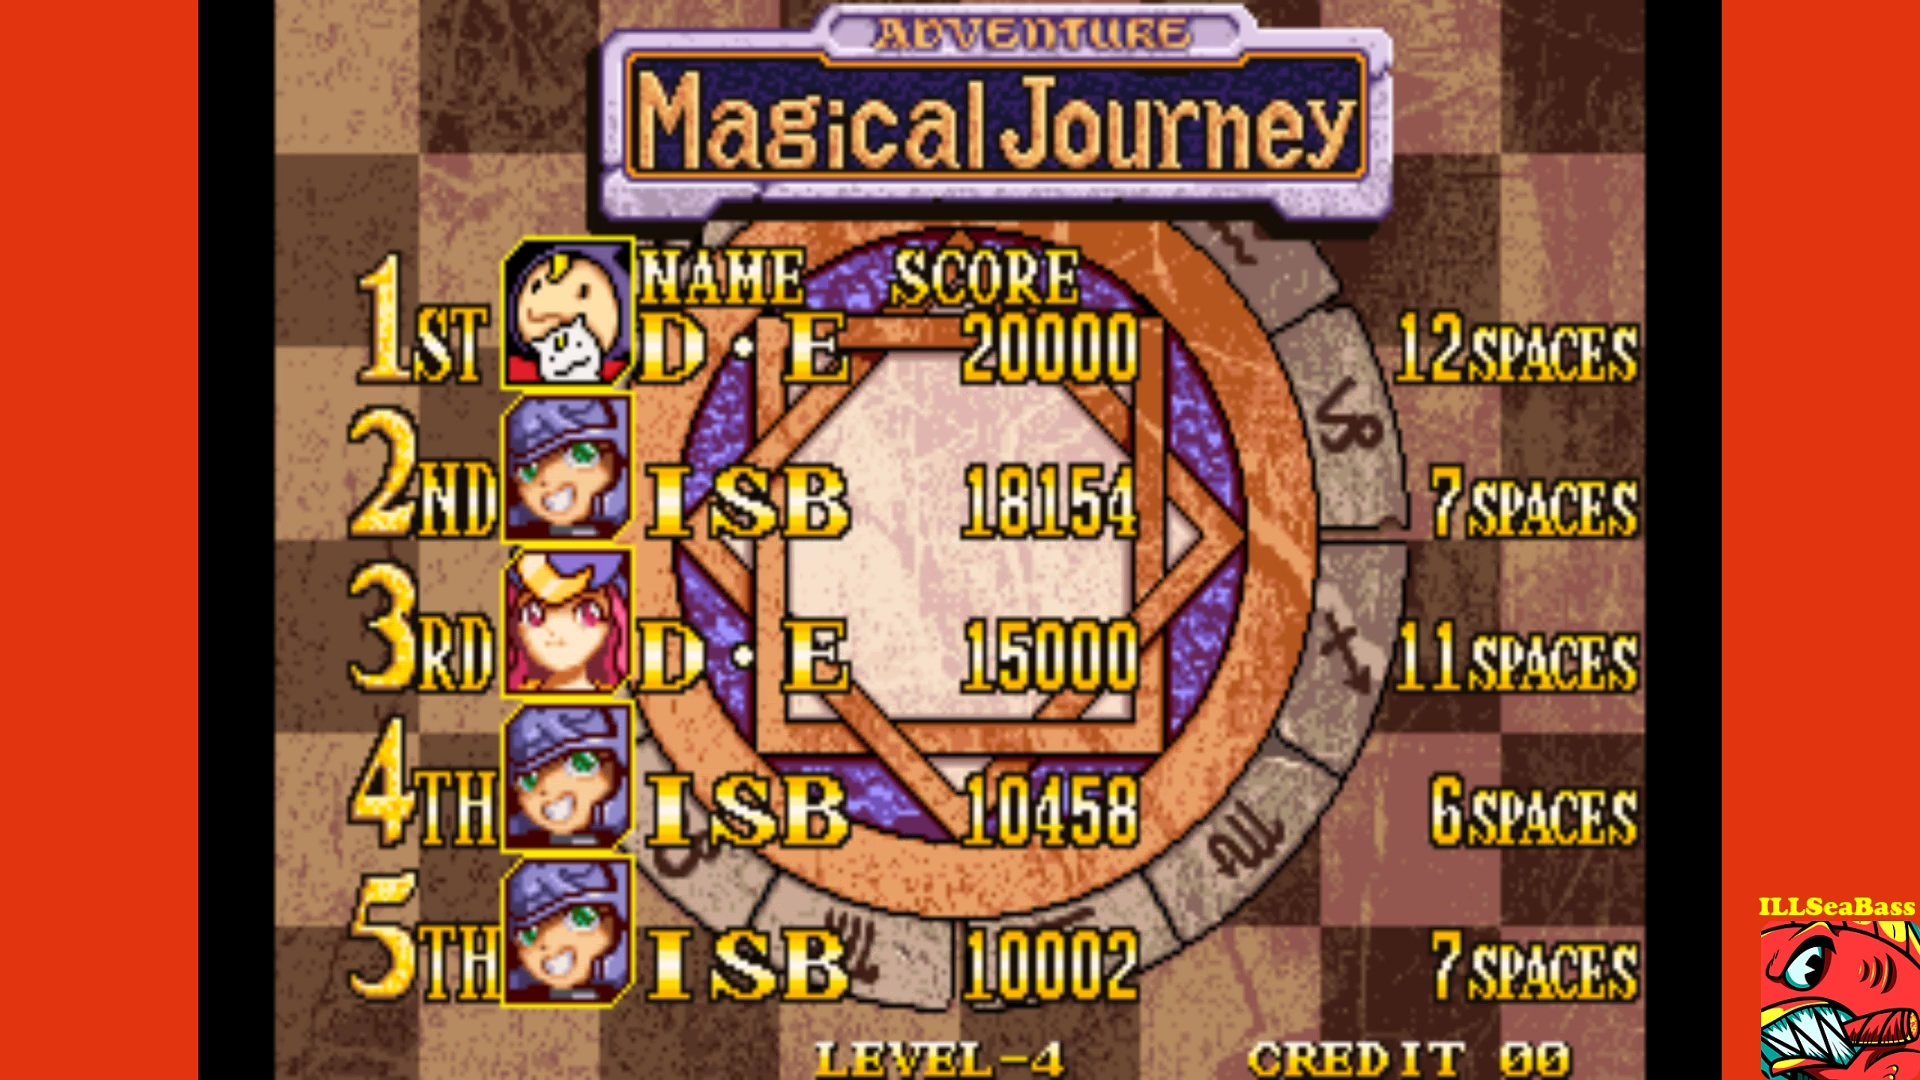 ILLSeaBass: Magical Drop 3: Magical Journey (Neo Geo Emulated) 18,154 points on 2017-09-26 15:59:19